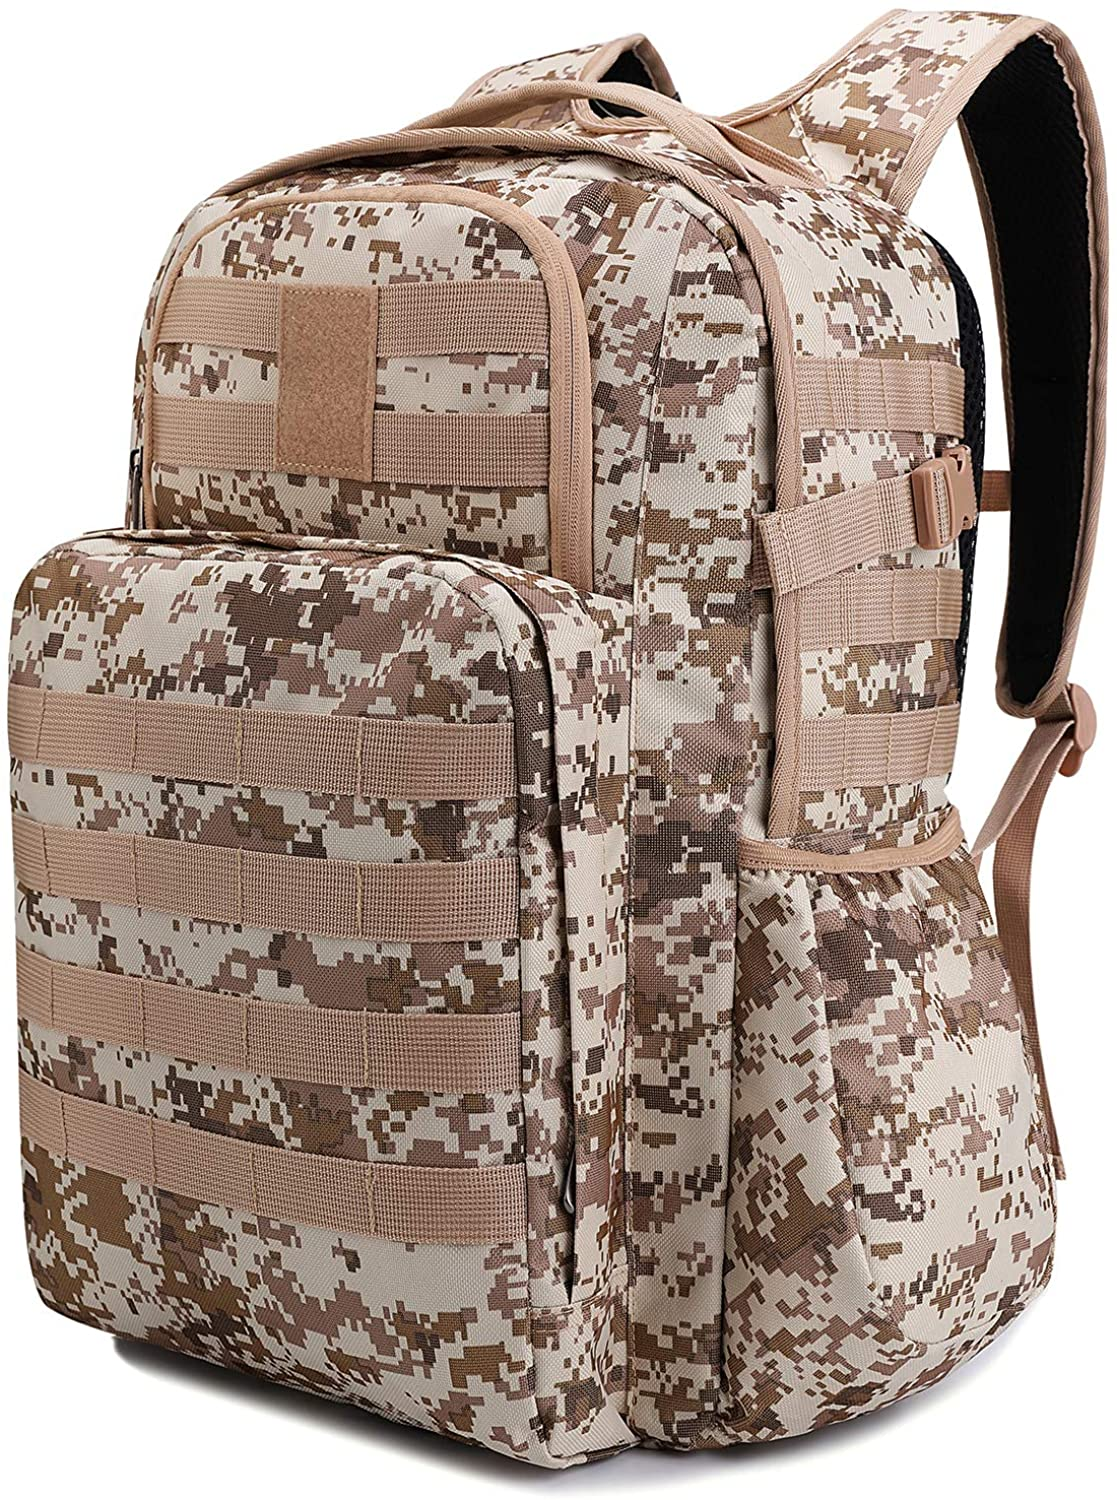 TAIBID Military Tactical Backpack Water Resistant Large Army 3 Day Assault Pack Outdoors